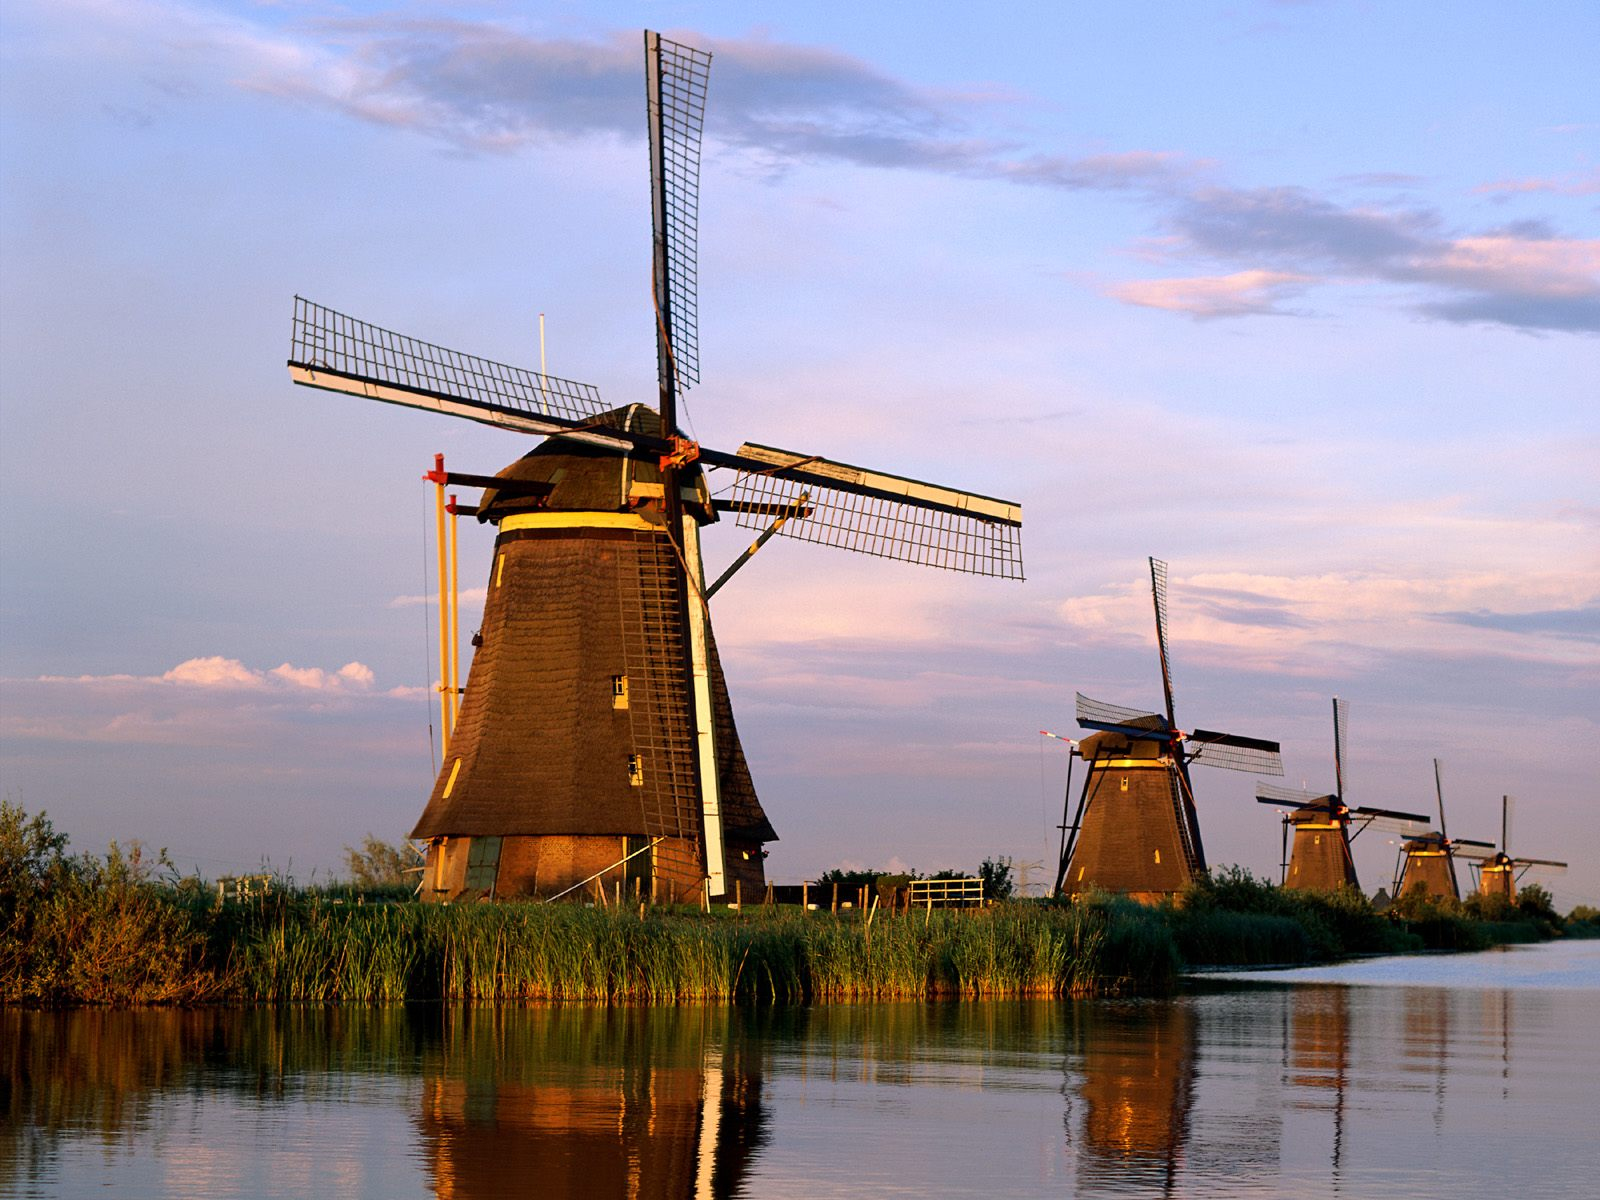 community power in the global community vol ii the netherlands